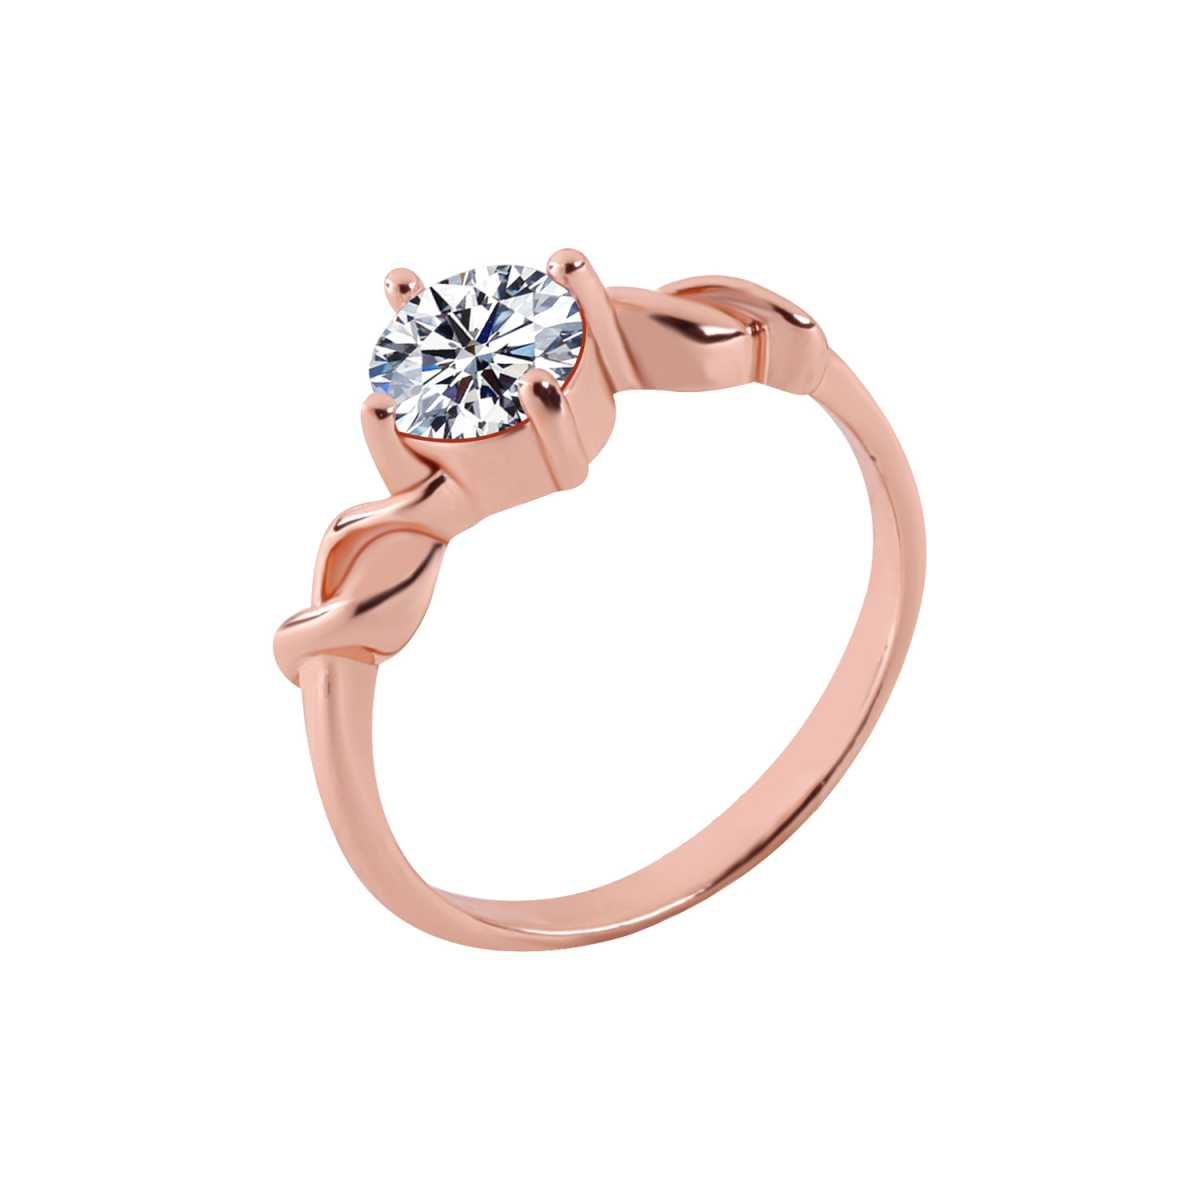 Silver Shine Rose Gold Plated Elegant Classic Crystal Solitaire Ring for Girls and women